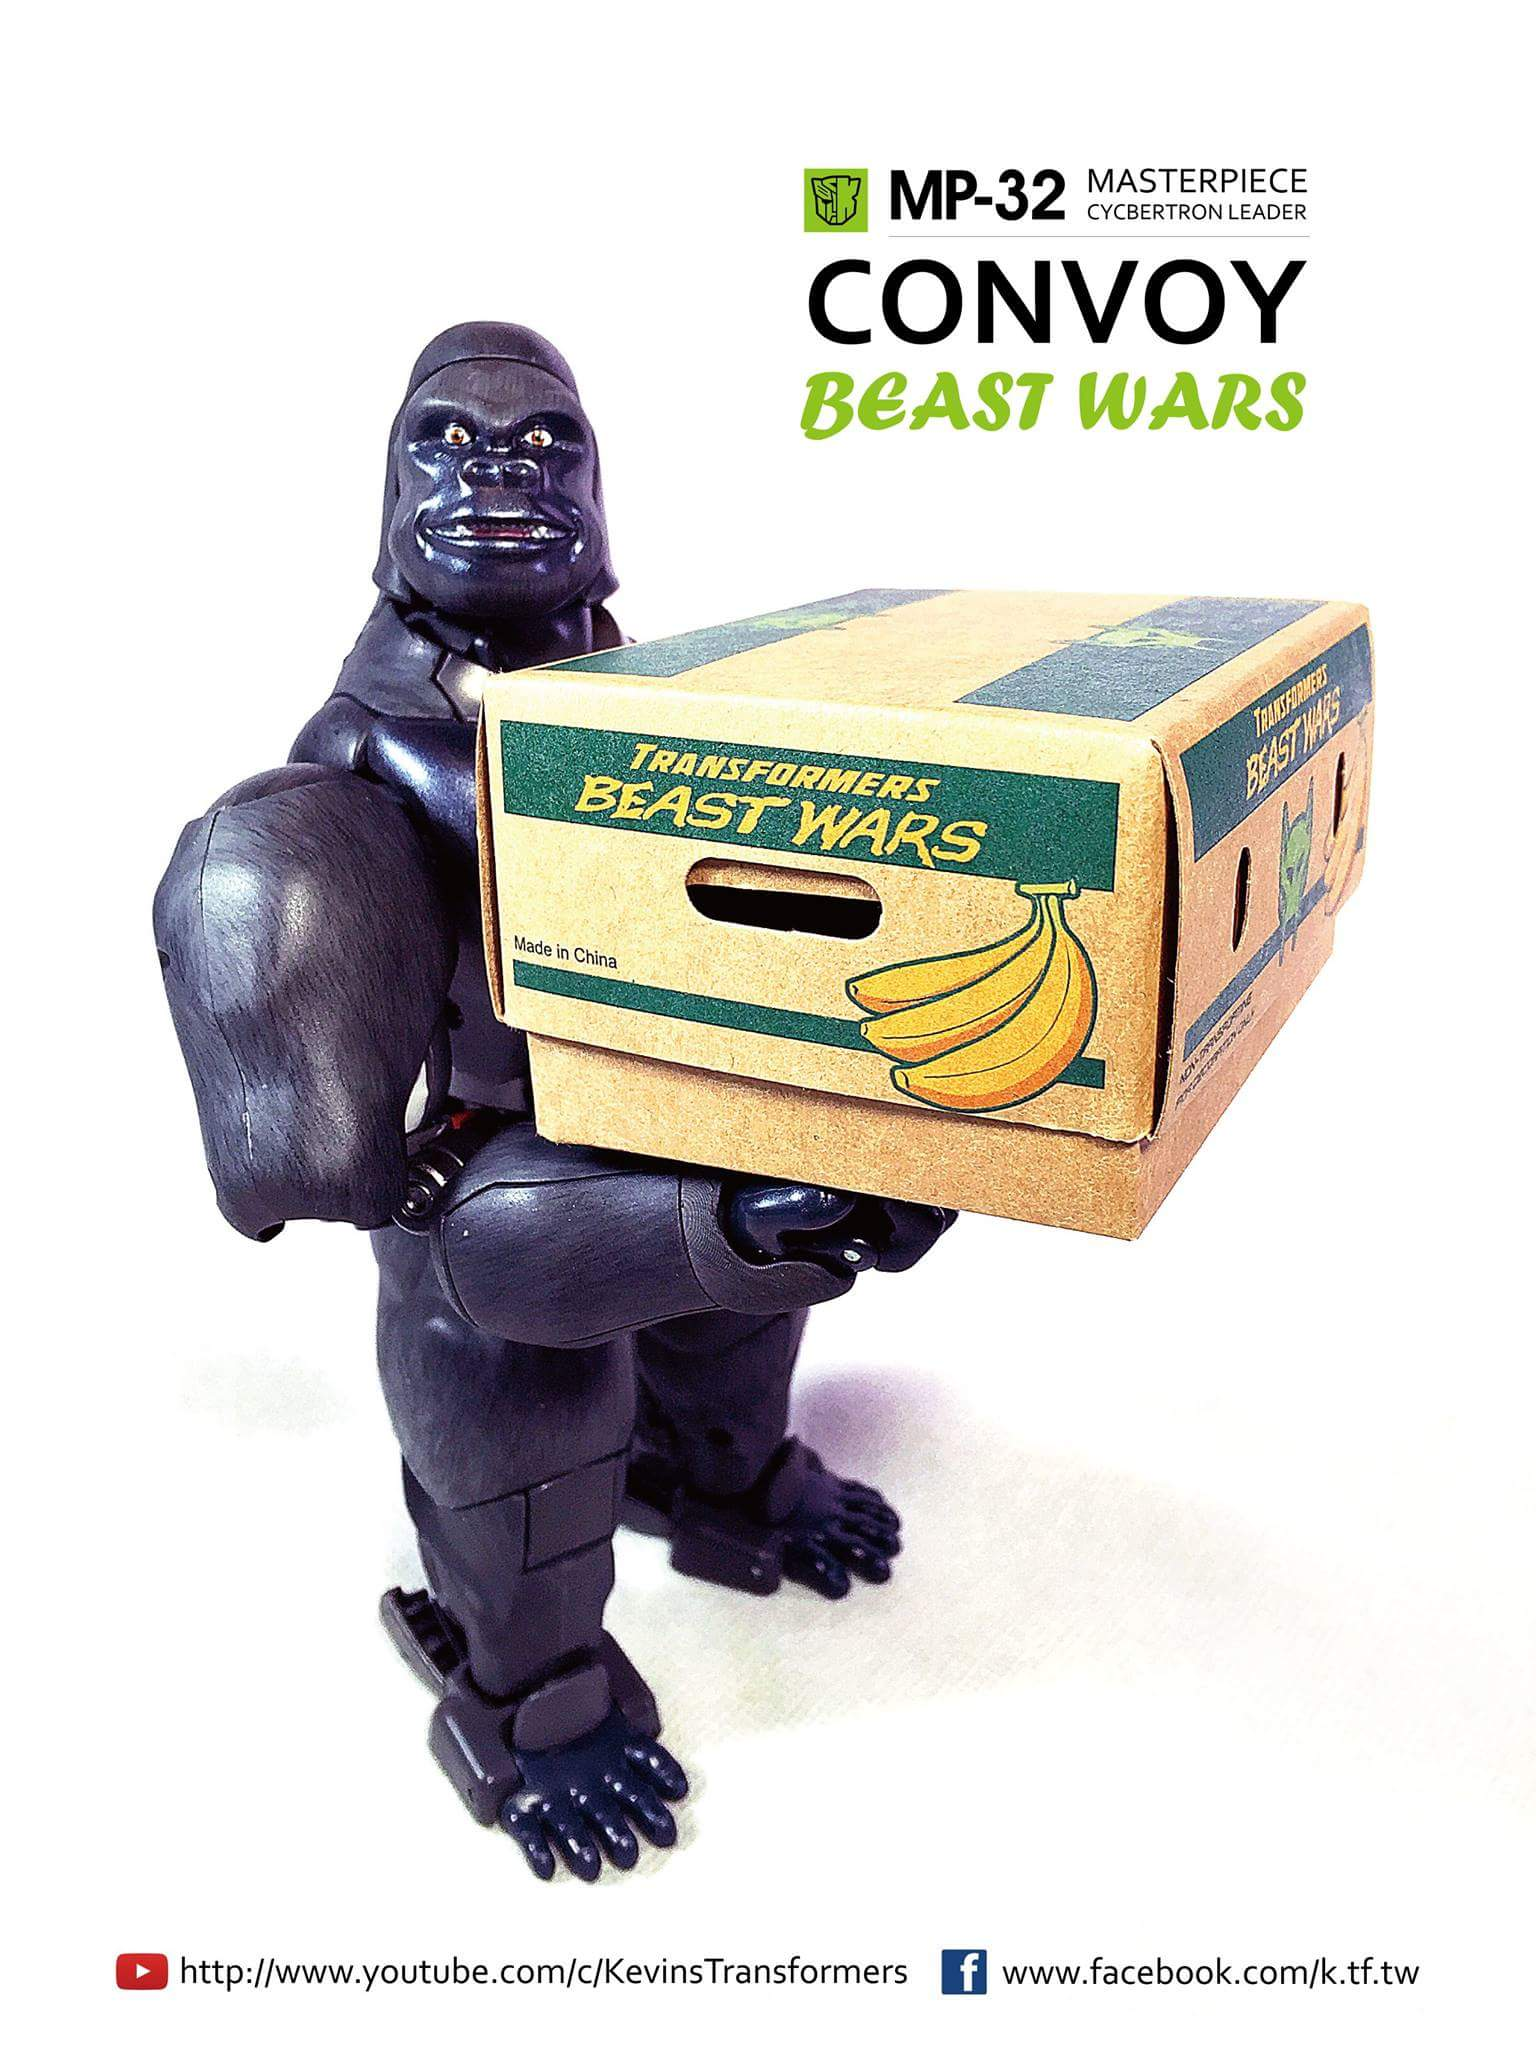 [Masterpiece] MP-32, MP-38 Optimus Primal et MP-38+ Burning Convoy (Beast Wars) - Page 3 ULPkH2HN